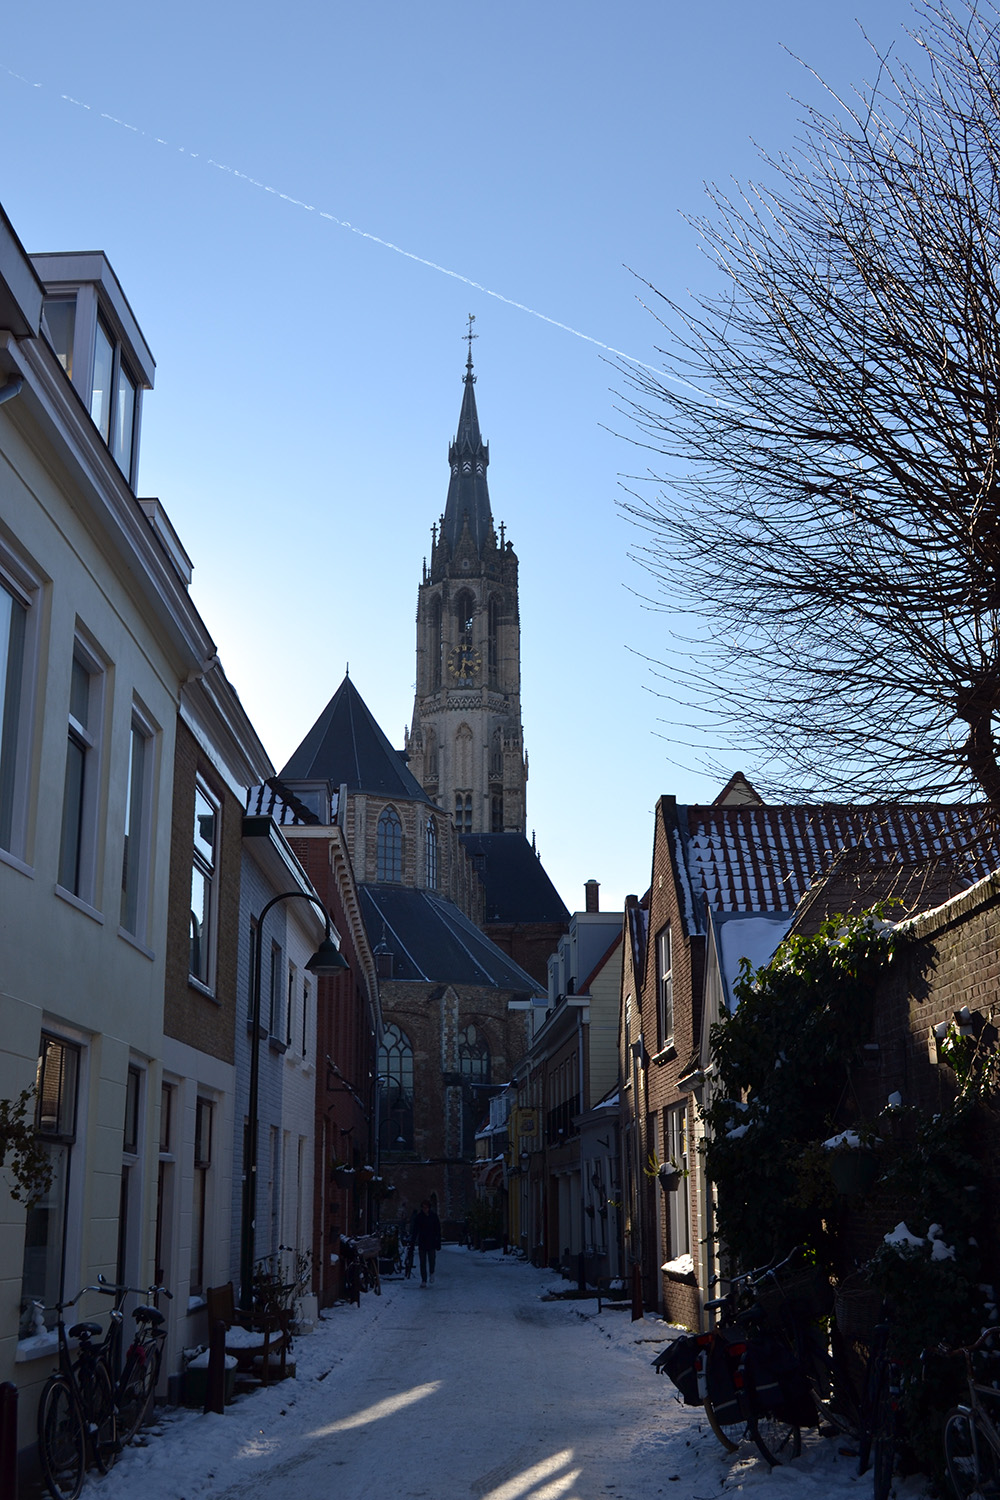 Travel Diary: Ein Wintertag in Delft | Niederlande - winter delft 4